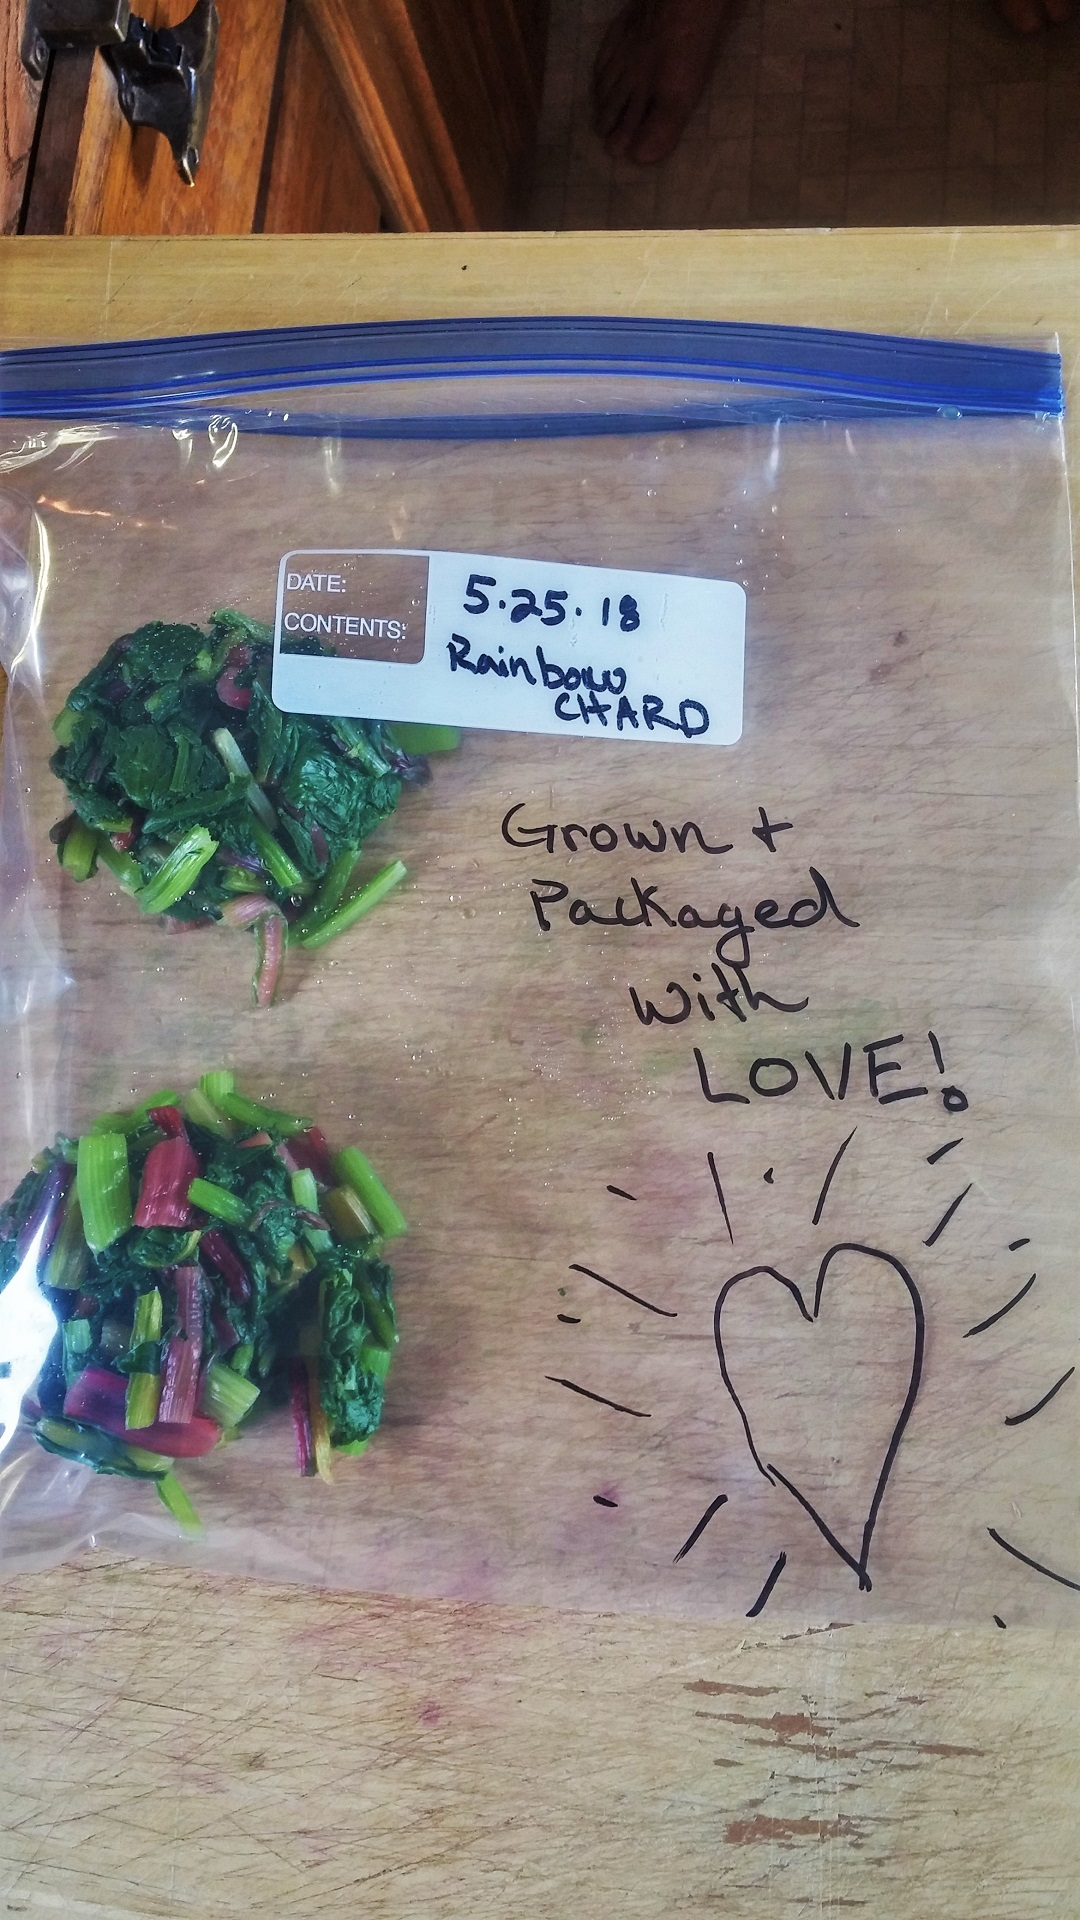 Chard Packaged with Love